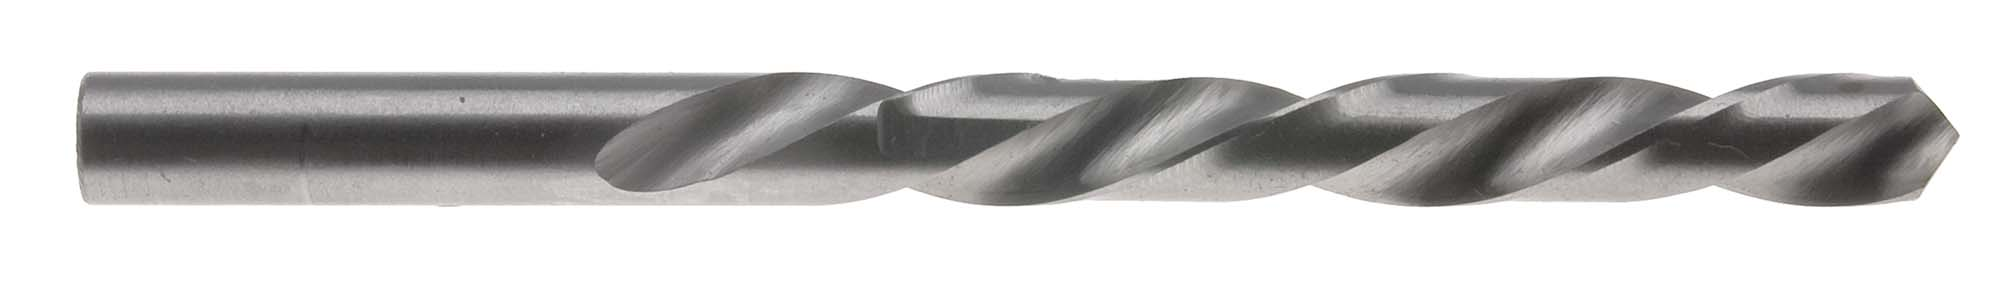 "#34 (.1110"") Left Hand Jobber Drill Bit, High Speed Steel"